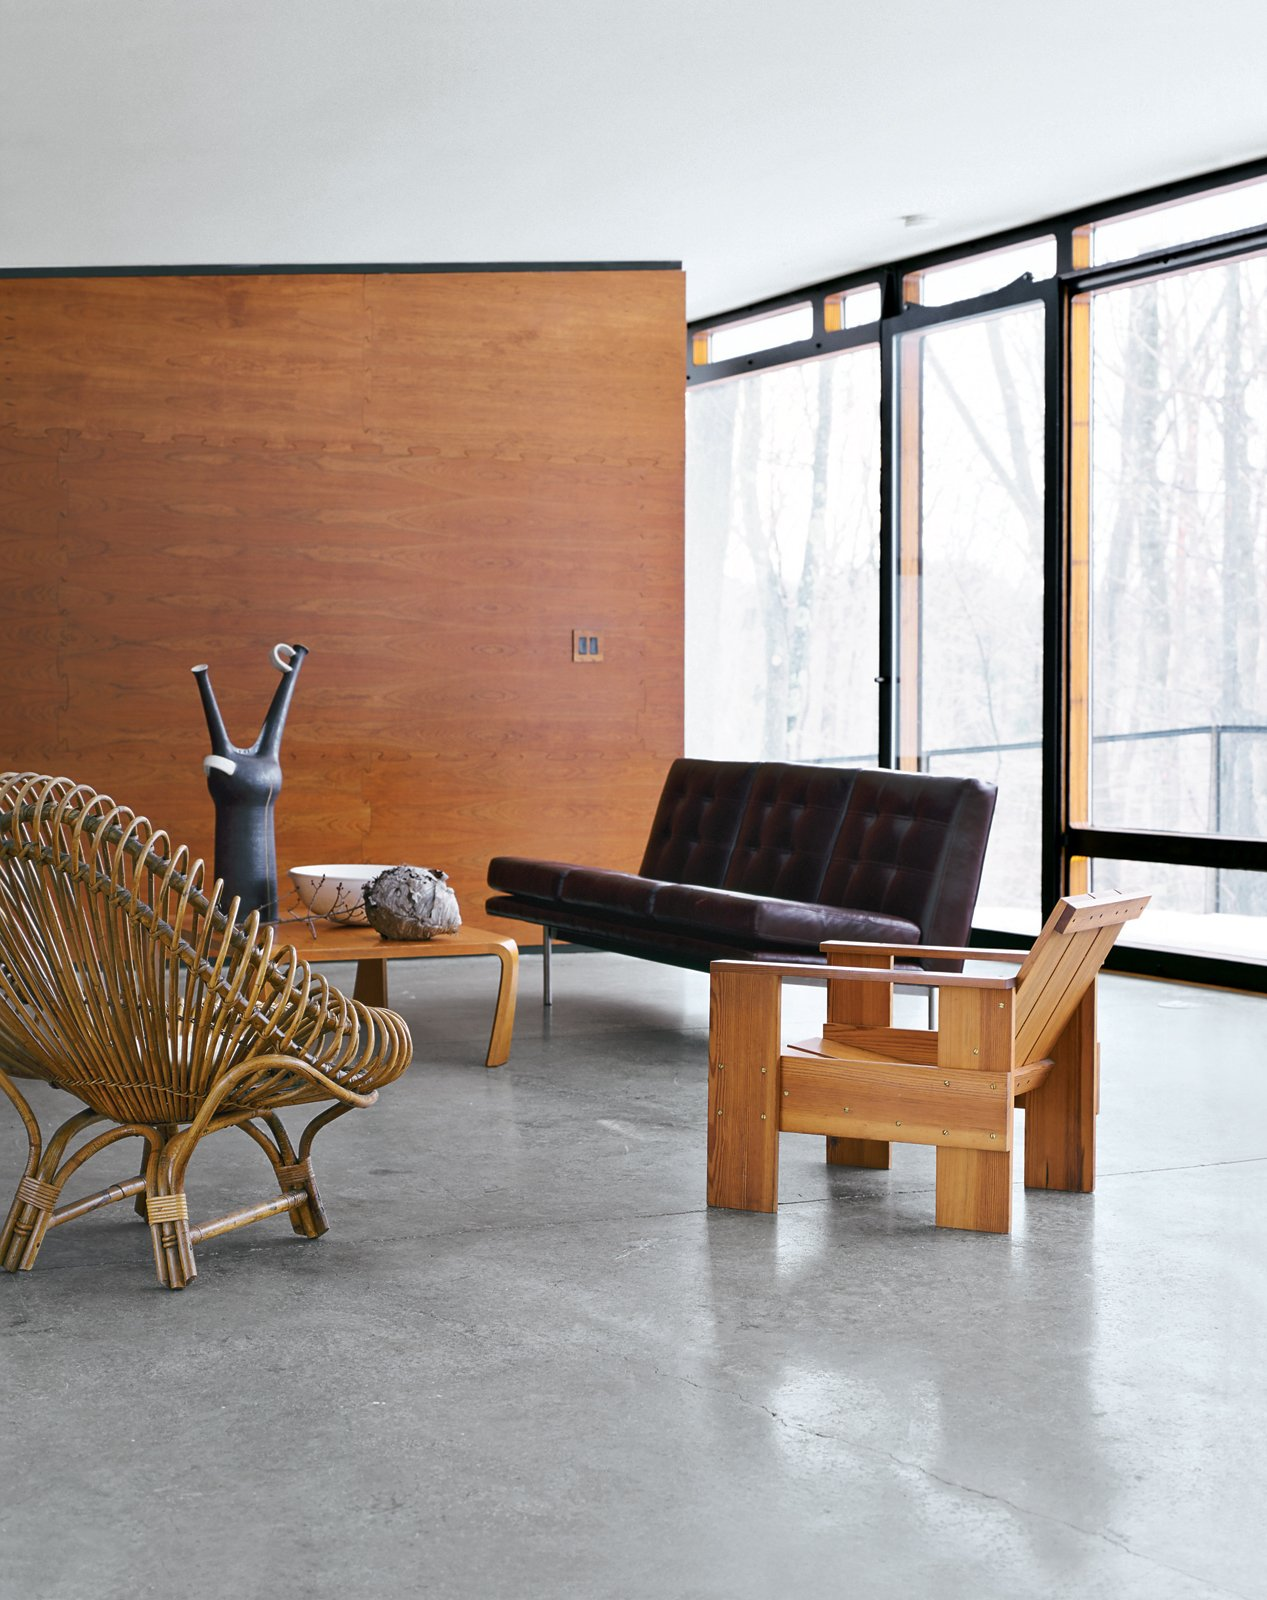 Architect William Massie built a hybrid prefab home for vintage retailer Greg Wooten, who handled the interiors. In the living room is a 1950s Franco Albini rattan chair, a Crate chair designed by Gerrit Rietveld in 1934, and a 1970s sofa by Edward Axel Roffman. The tall ceramic piece is by Bruno Gambone. Tagged: Living Room, Sofa, Chair, and Concrete Floor.  Photo 3 of 12 in A Hybrid Prefab Home in Upstate New York